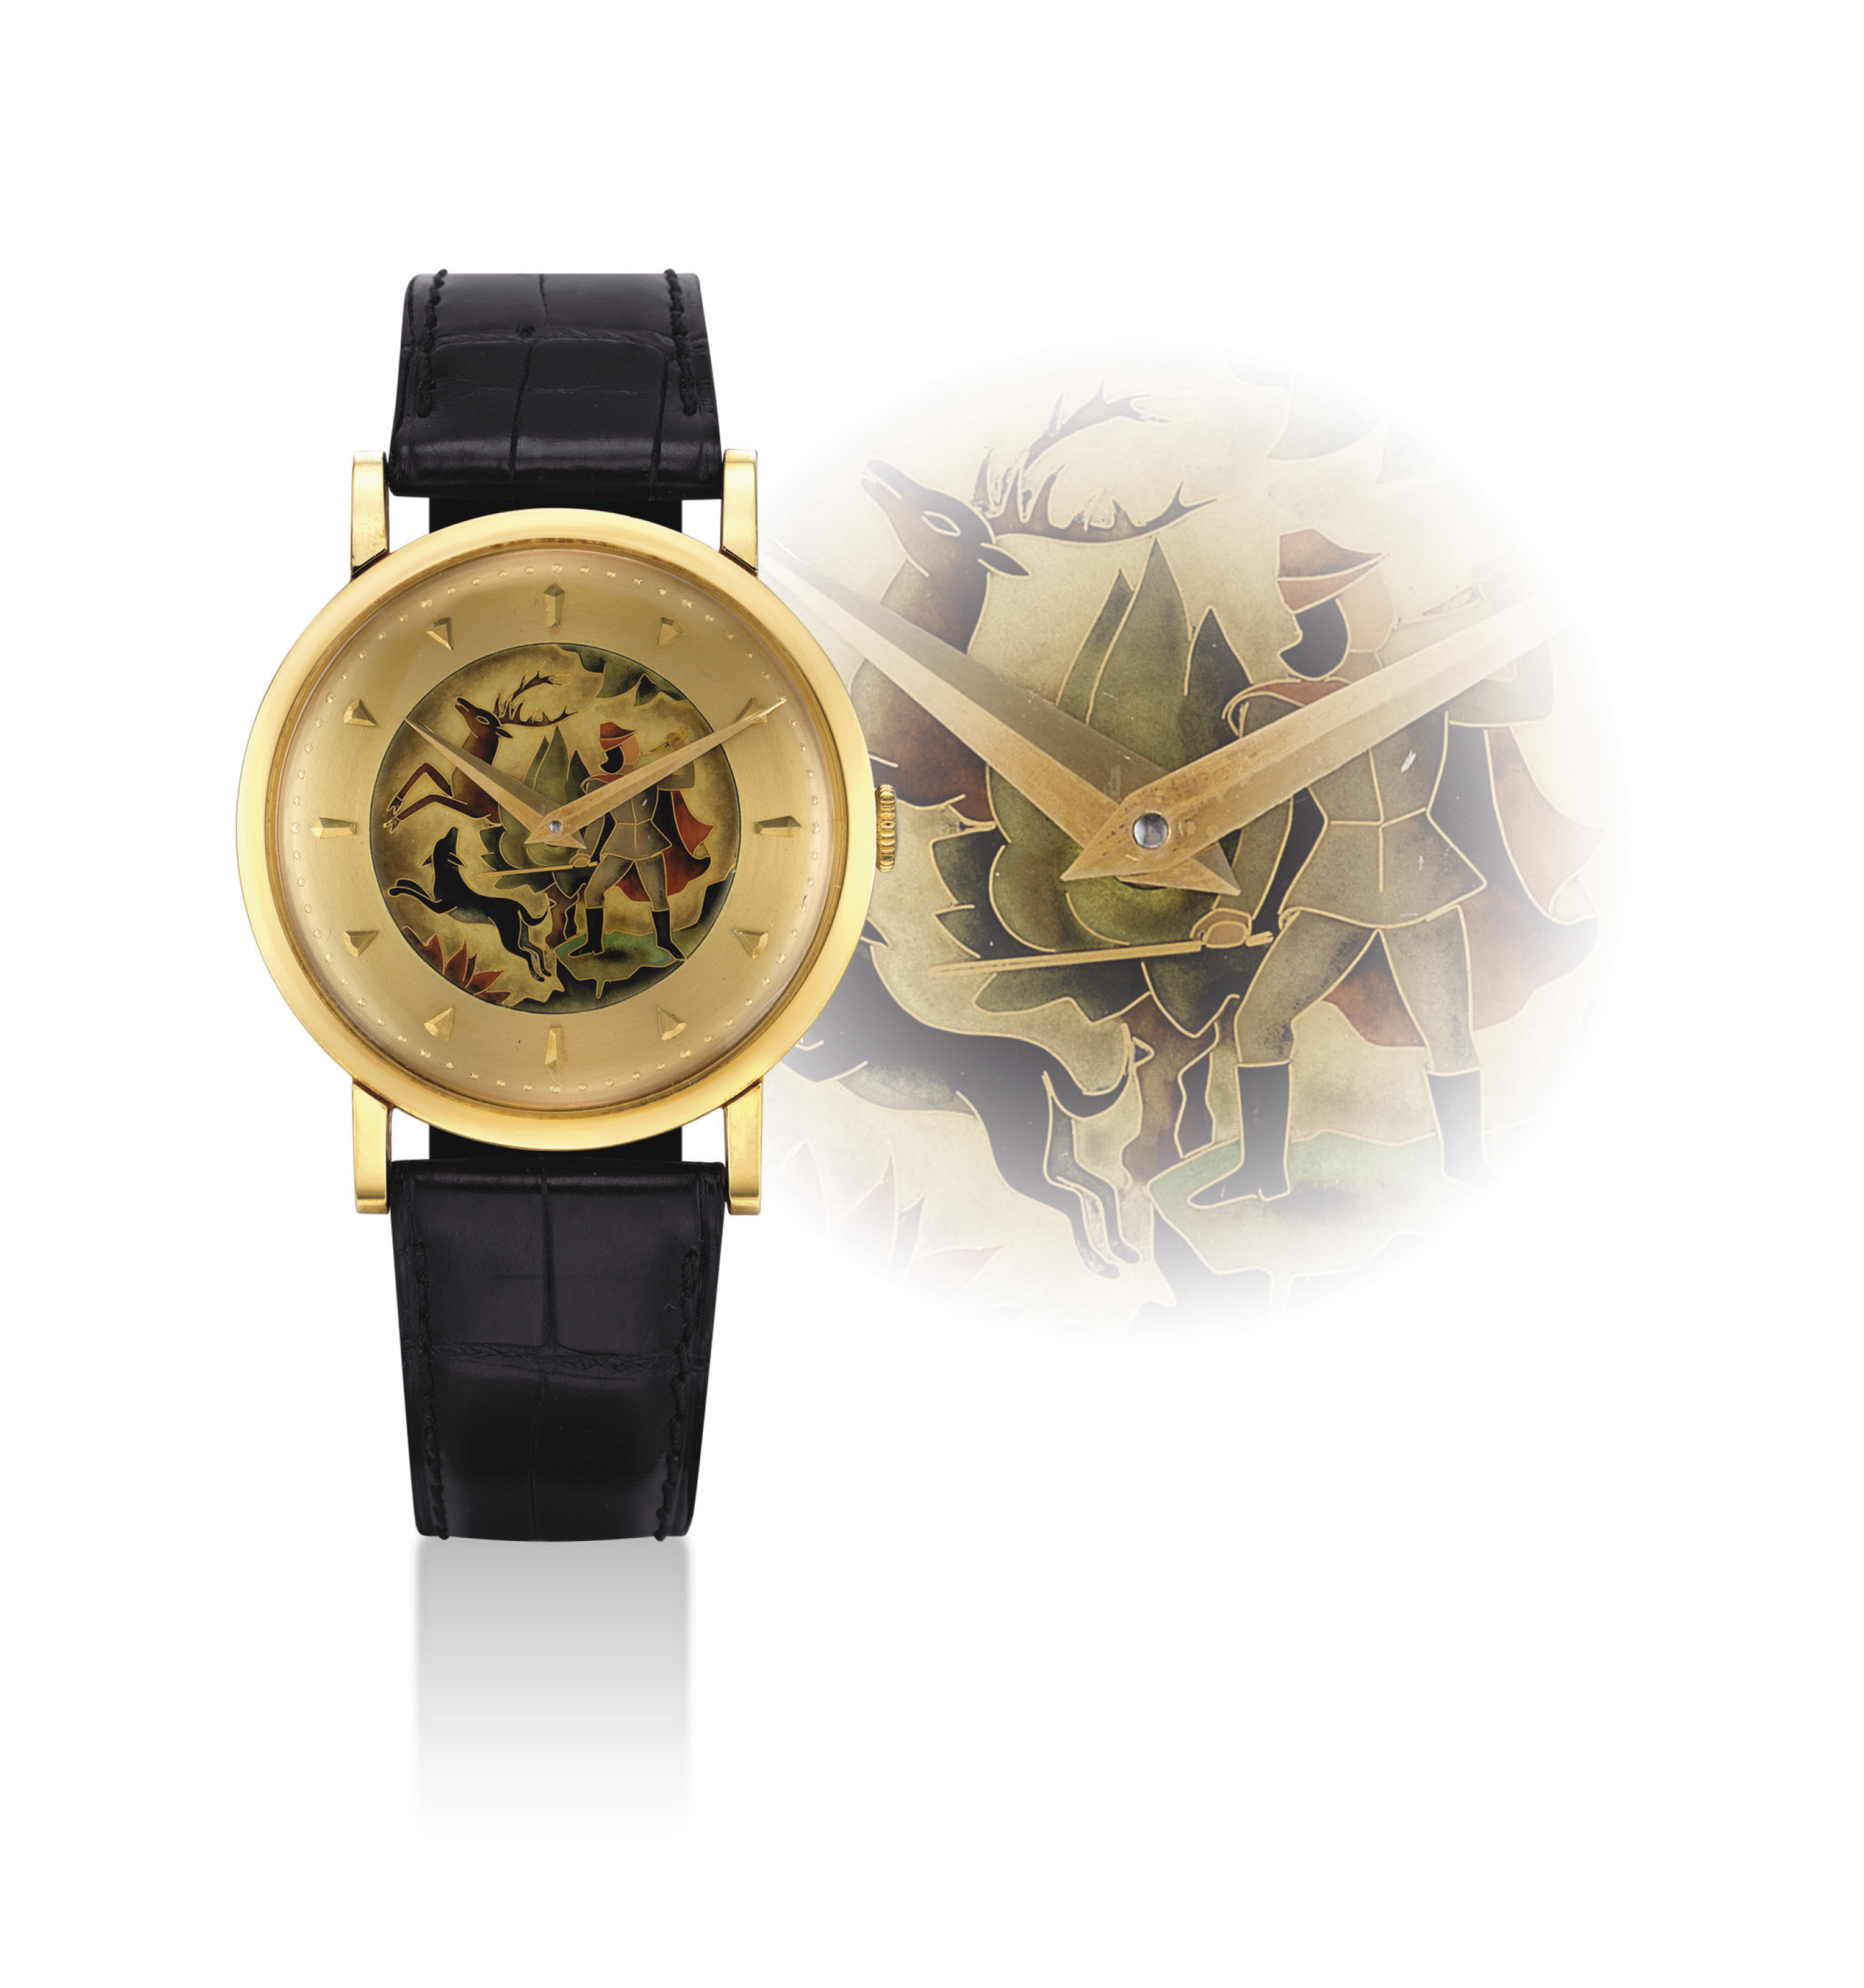 UNIVERSAL. A FINE AND RARE 18K GOLD WRISTWATCH WITH CLOISONNÉ ENAMEL DIAL